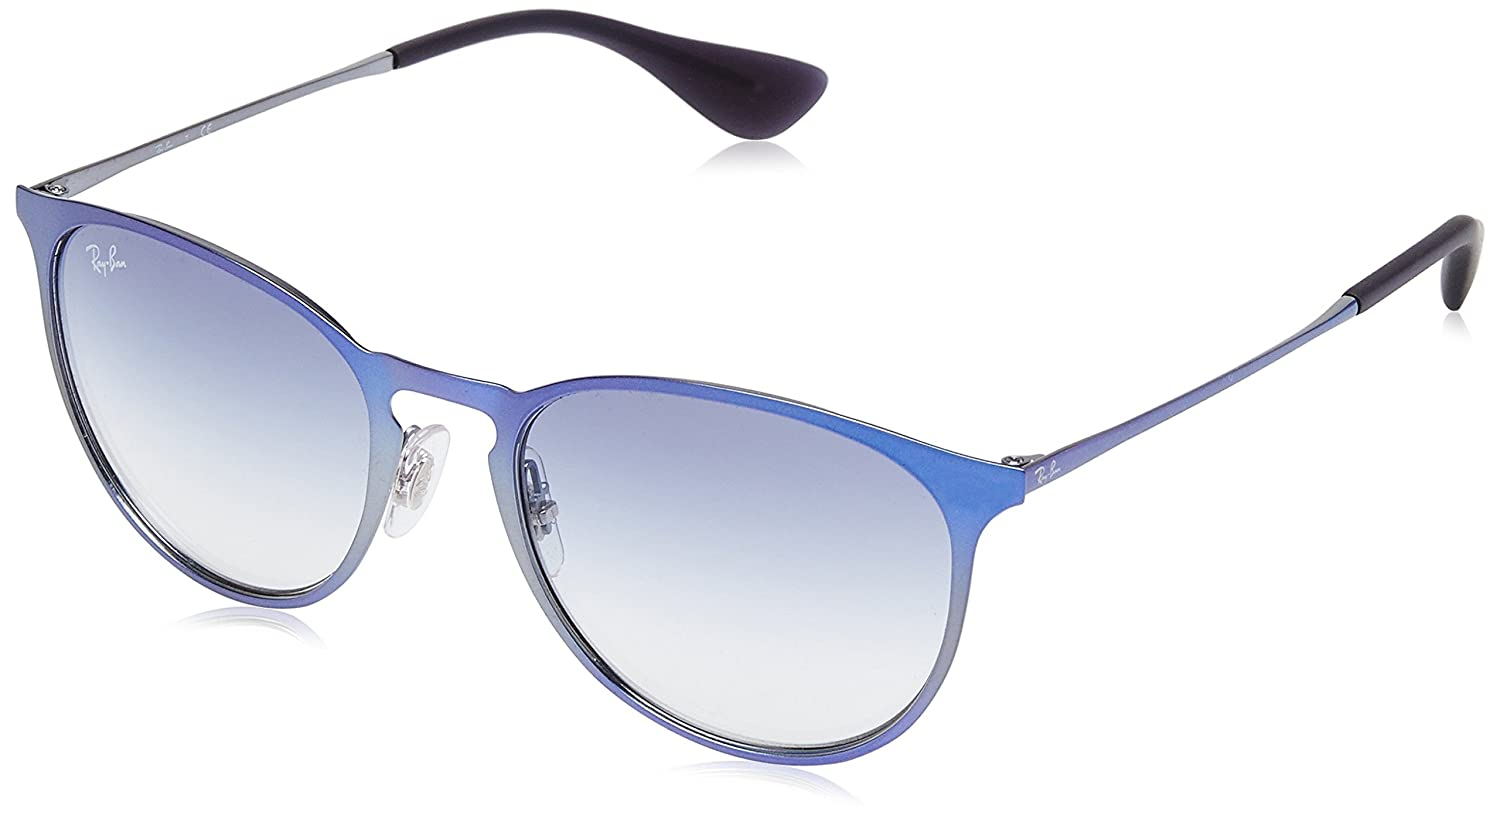 Ray-ban RB3539 Sonnenbrille 54 mm